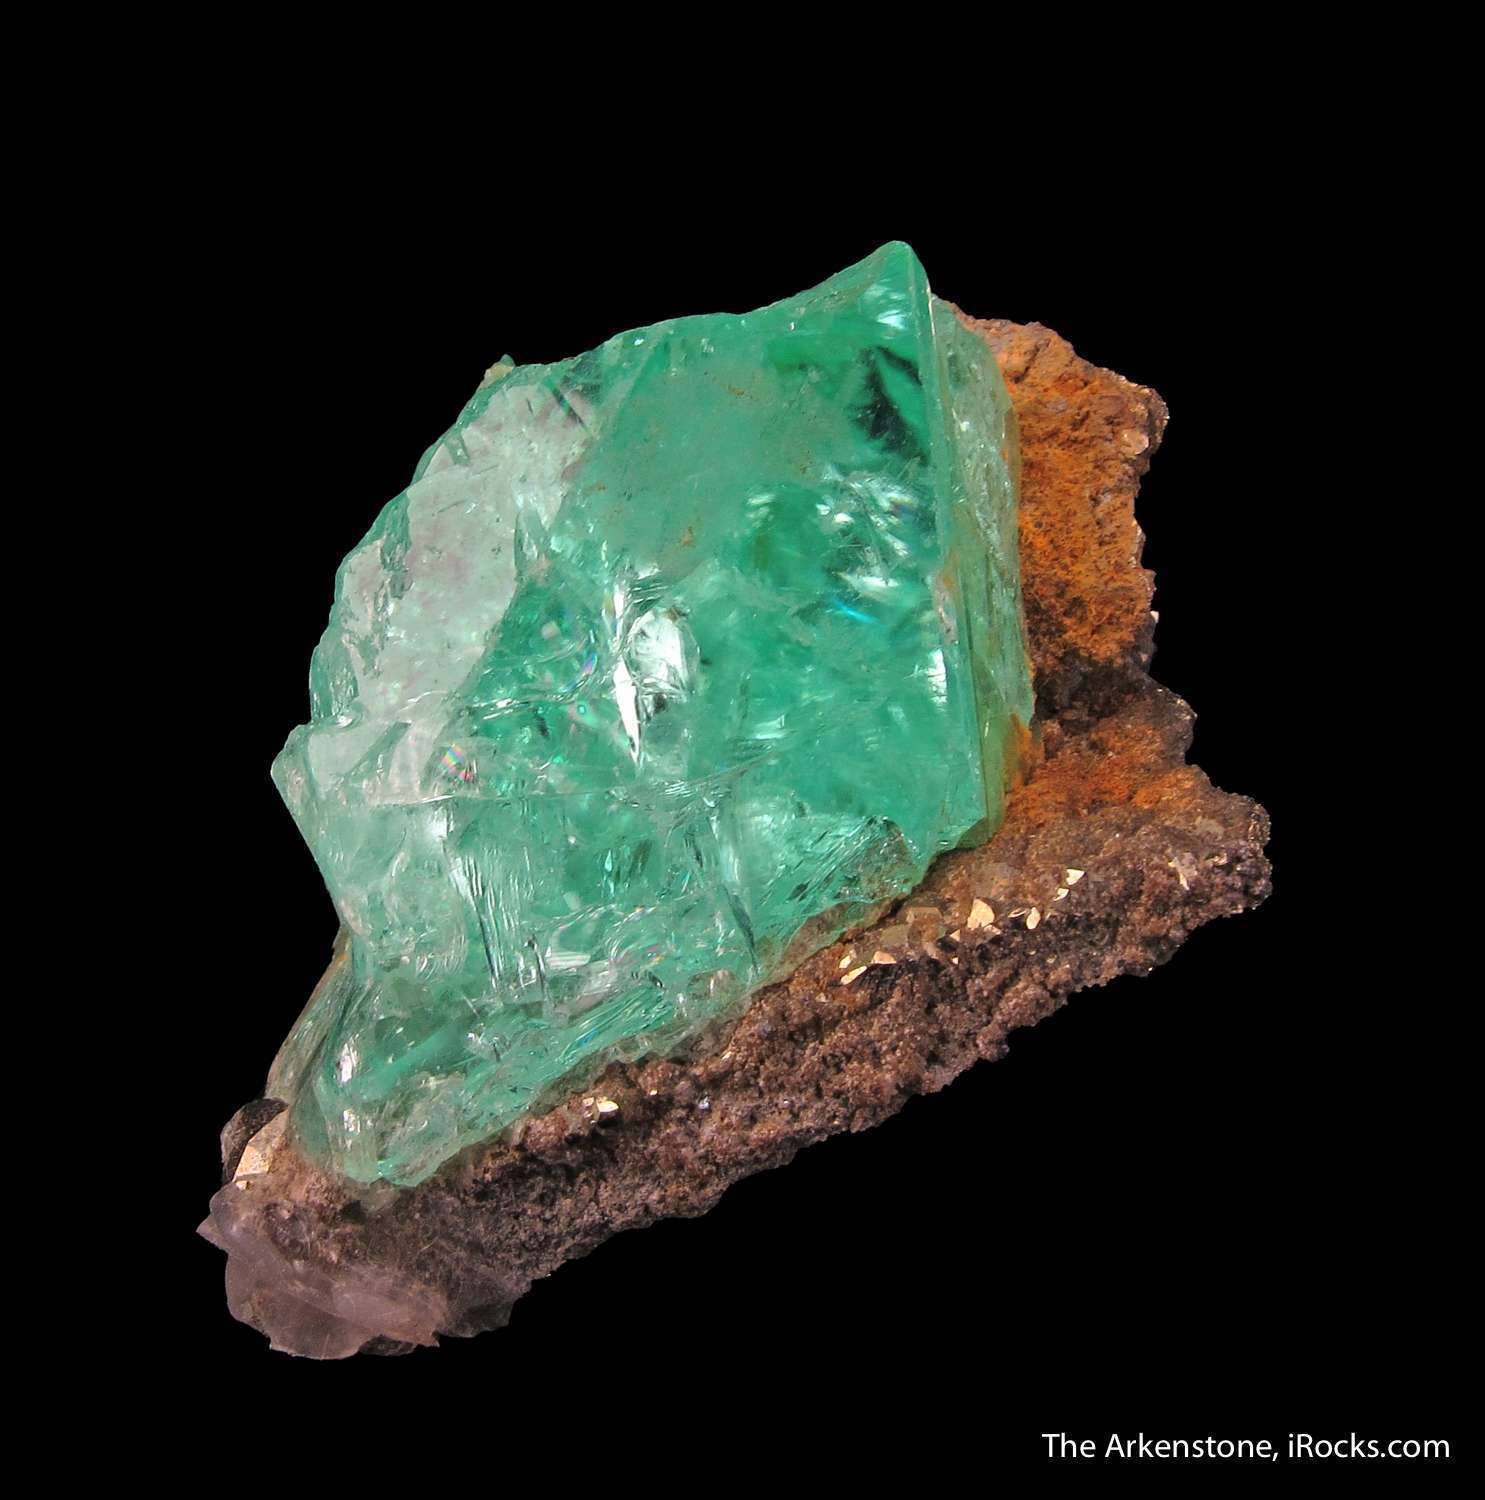 This rare beautiful species entire mineral world arguably amazing